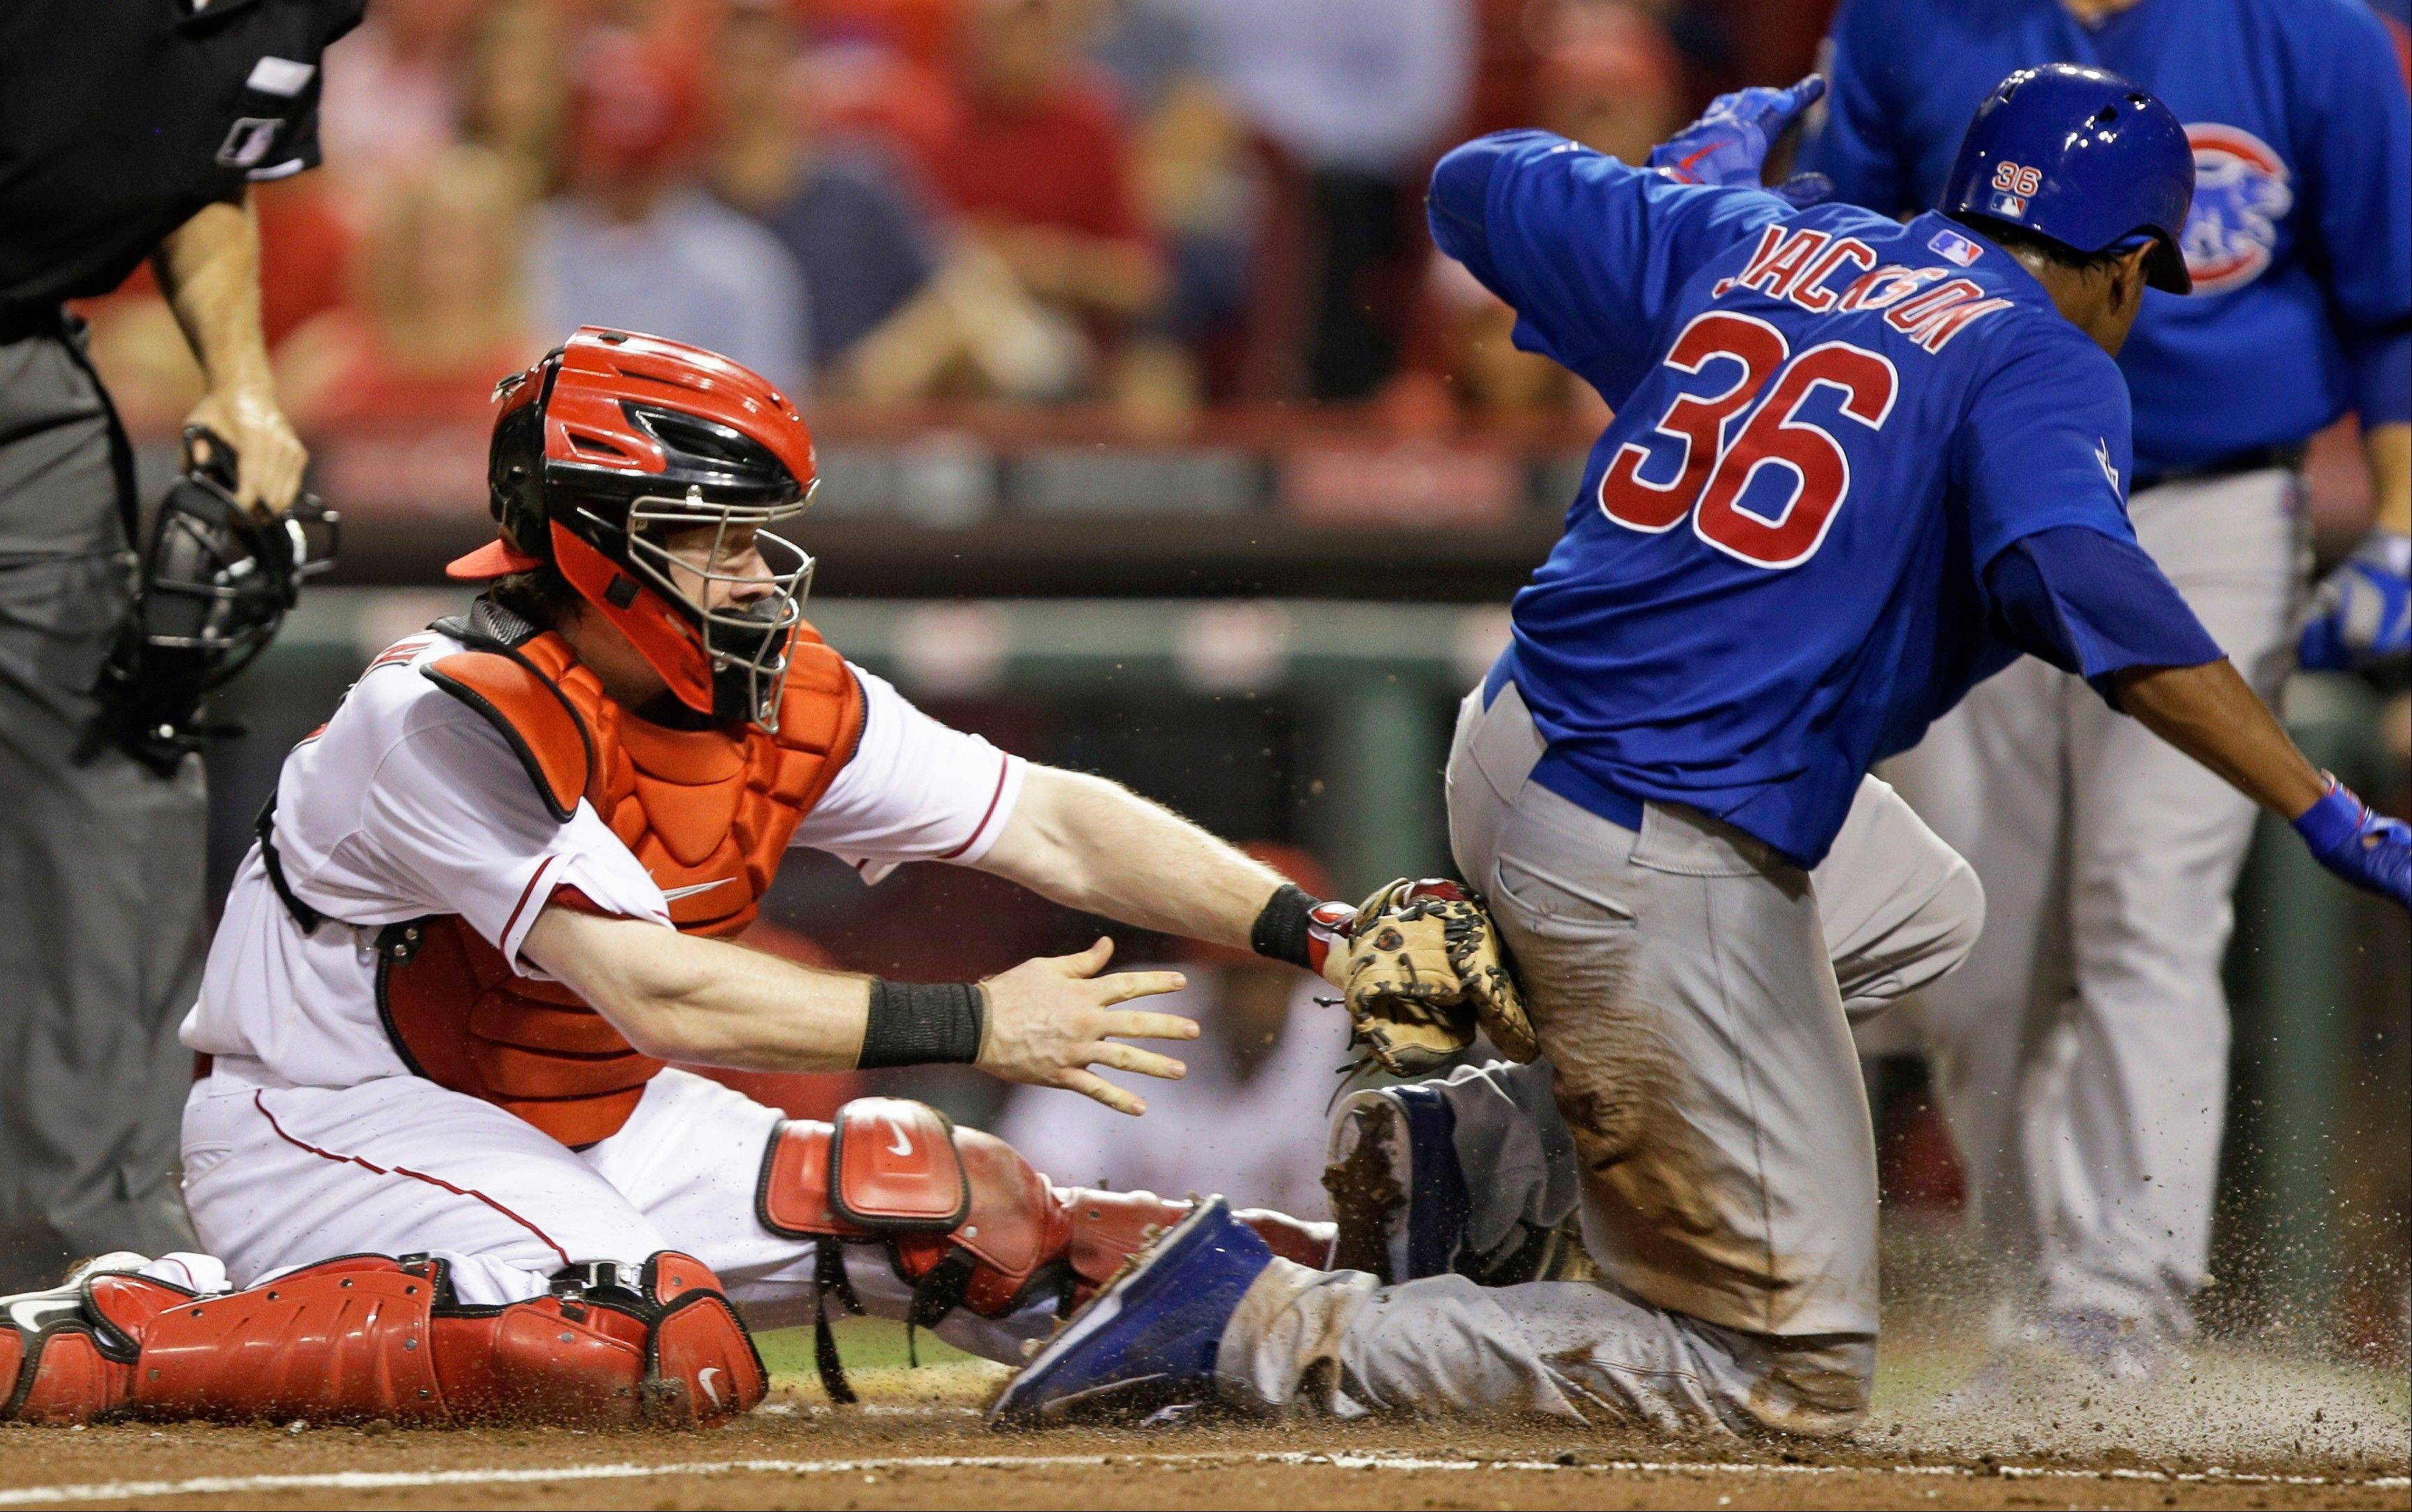 Chicago Cubs' Edwin Jackson (36) is safe at home as Cincinnati Reds catcher Ryan Hanigan is late with the tag in the fourth inning of a baseball game Tuesday in Cincinnati. Jackson scored on a sacrifice fly by Darwin Barney.